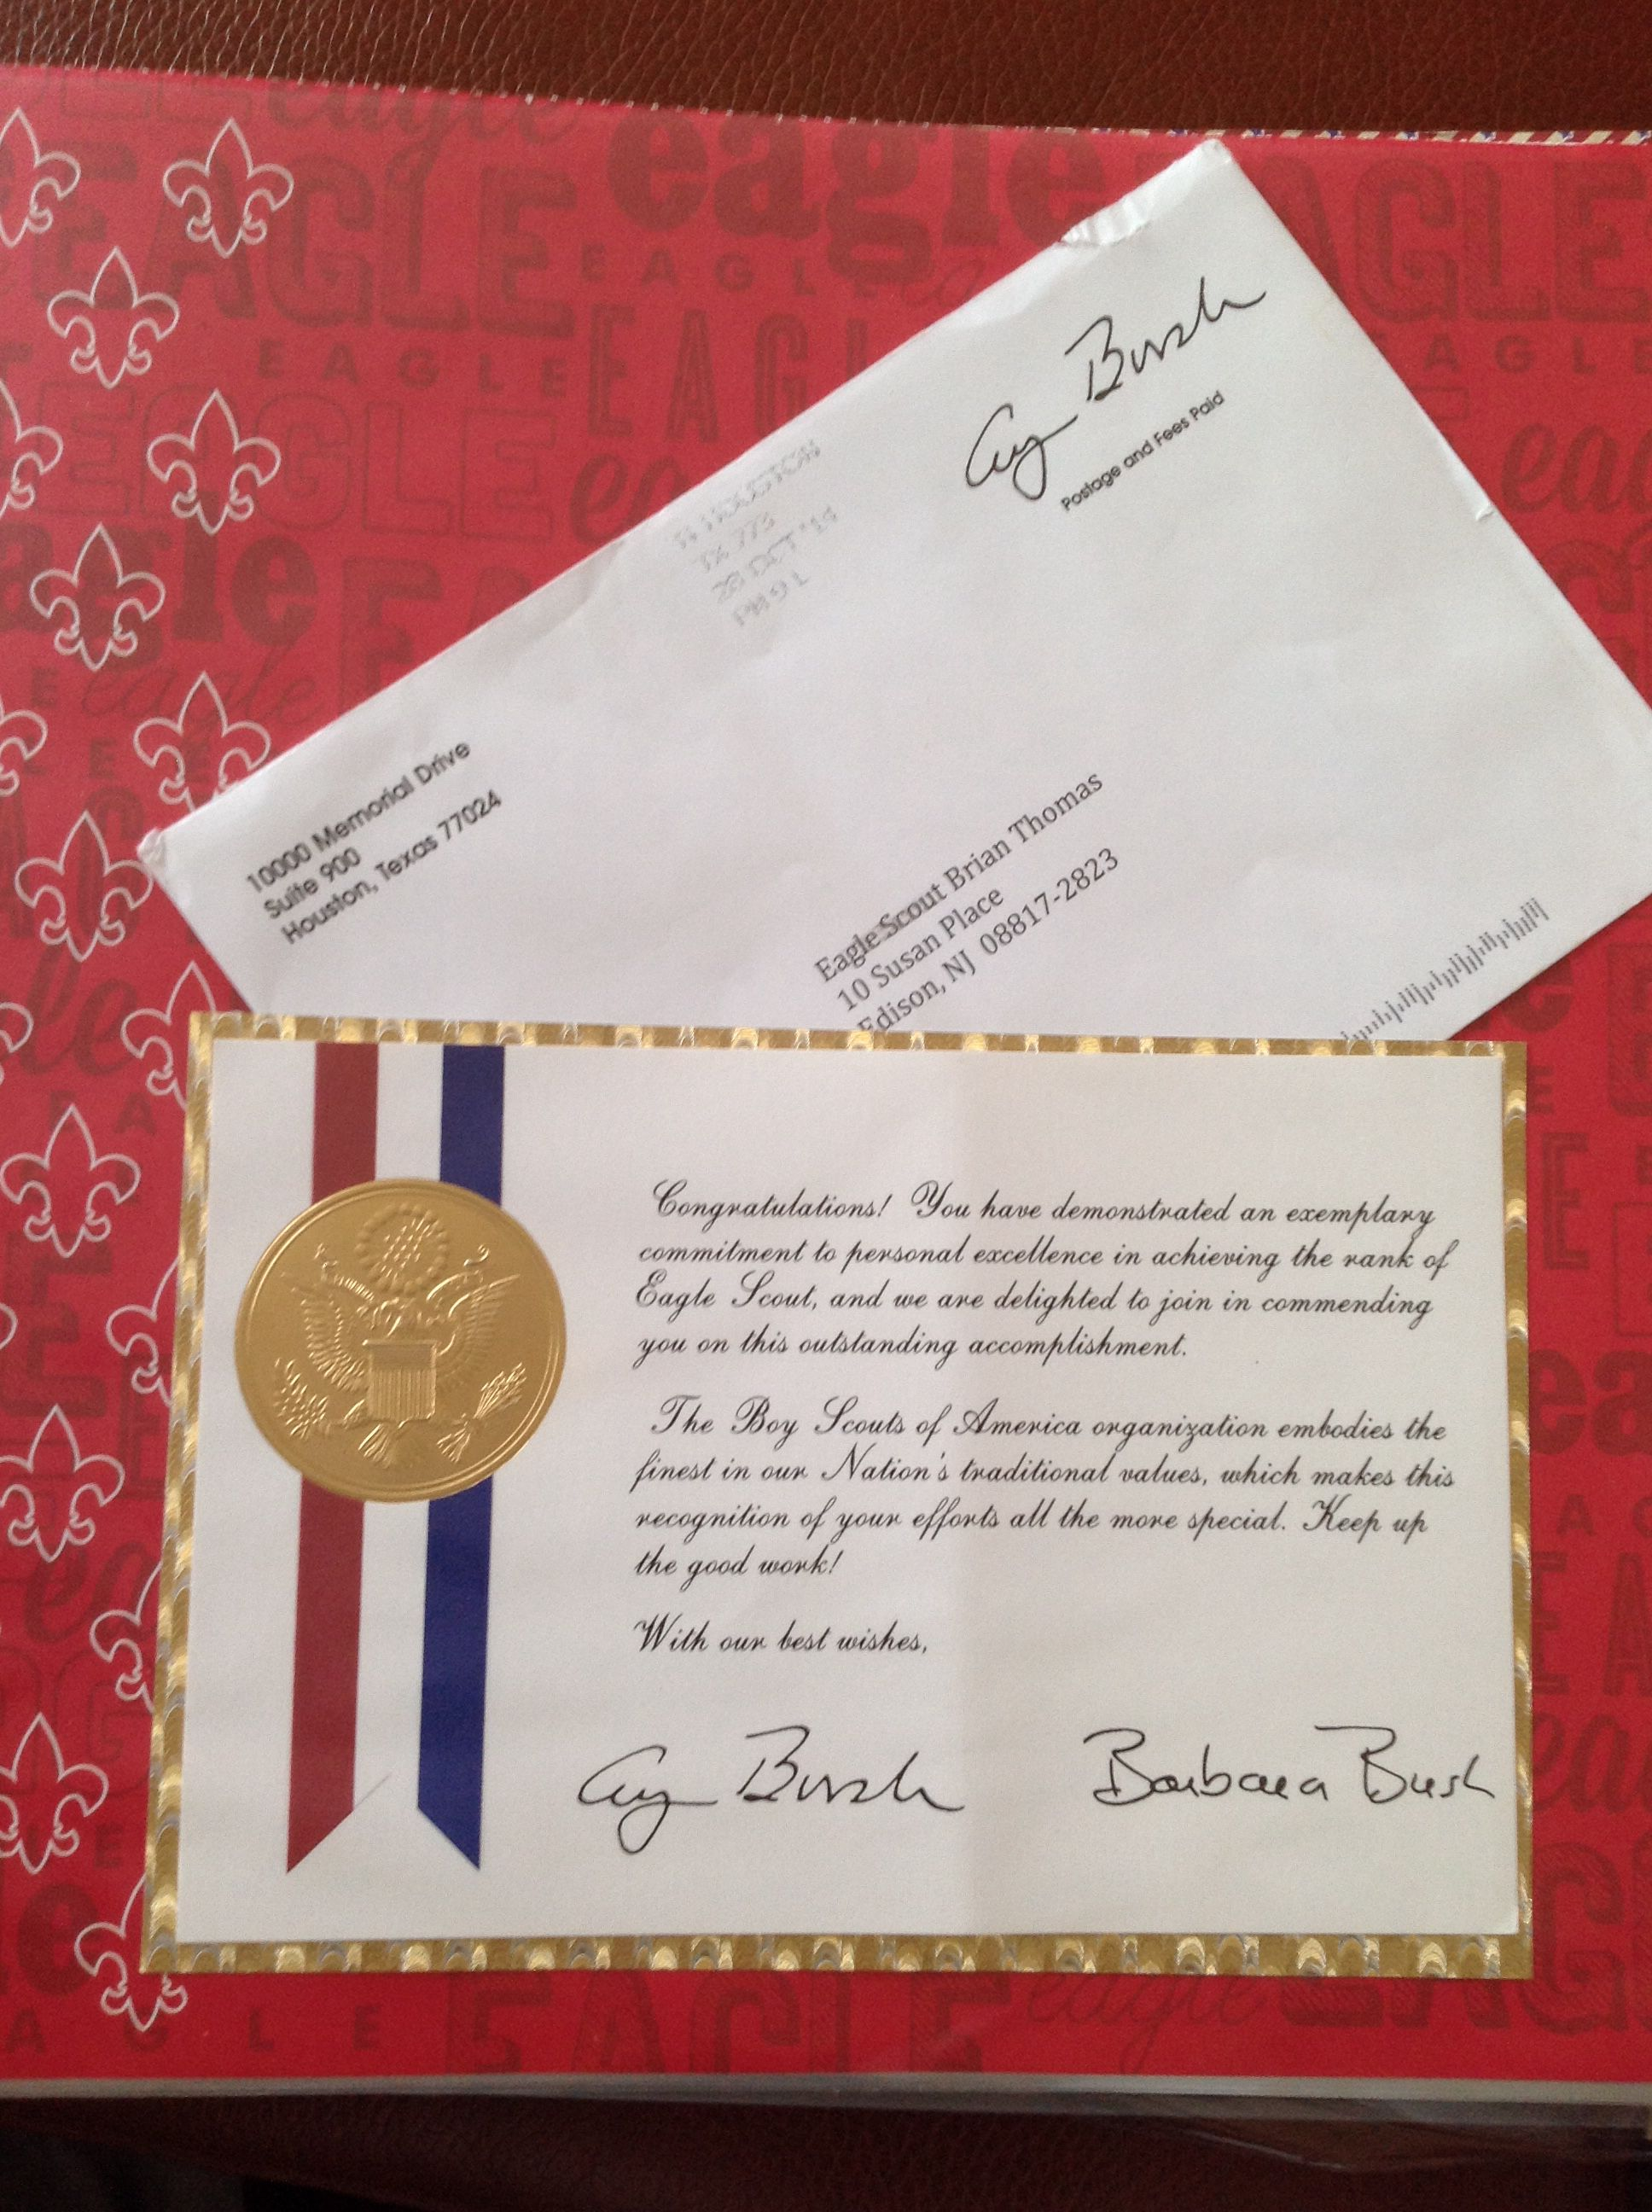 eagle court of honor letter of congratulations. president george